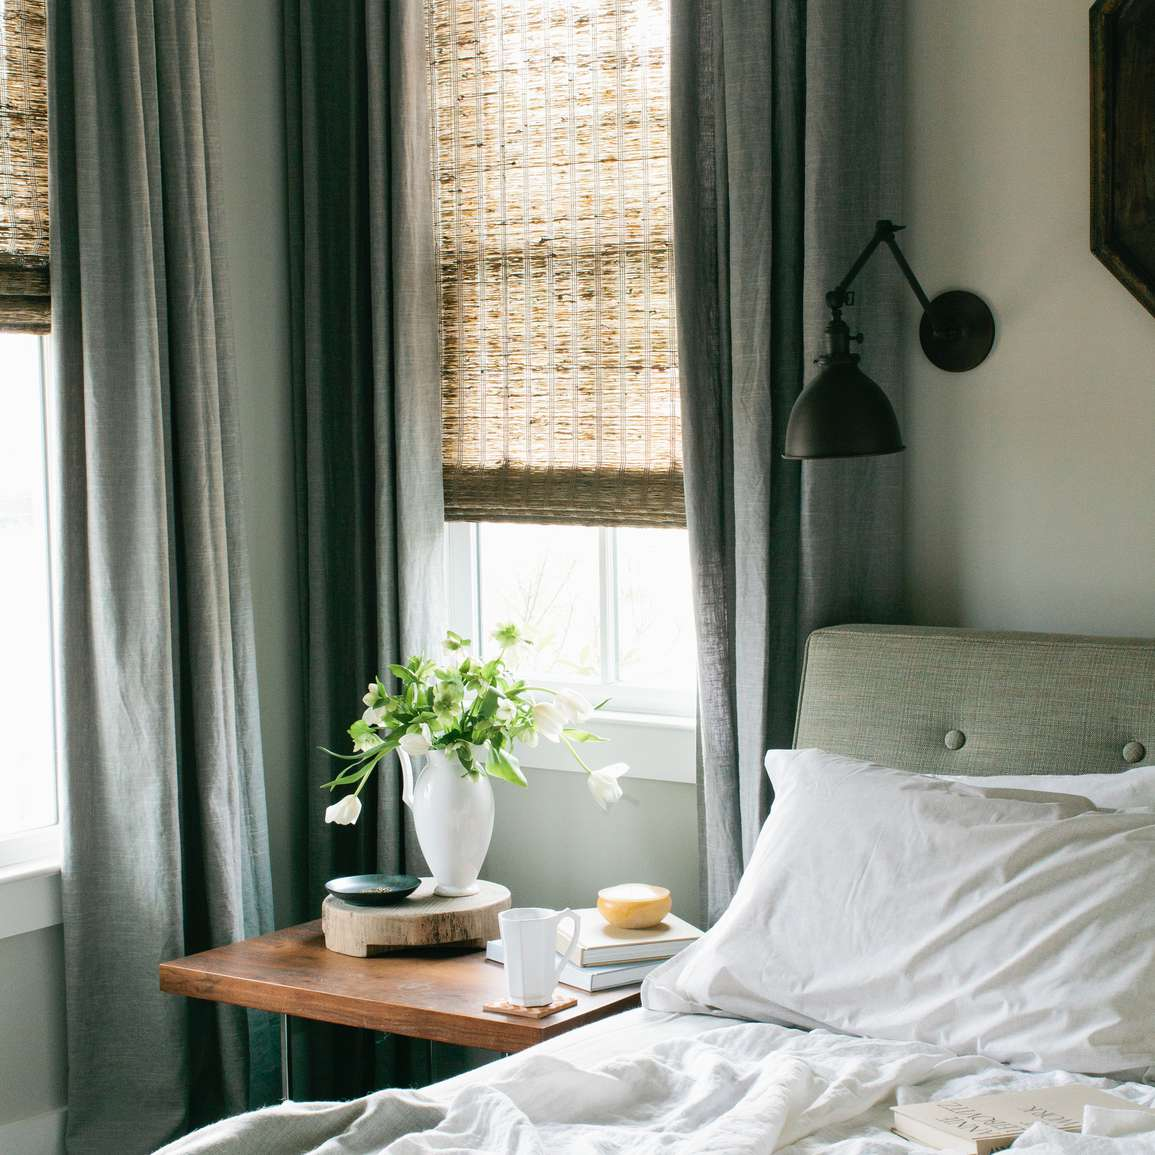 bed with messy sheets next to two windows and a nightstand with a plant and cup of coffee